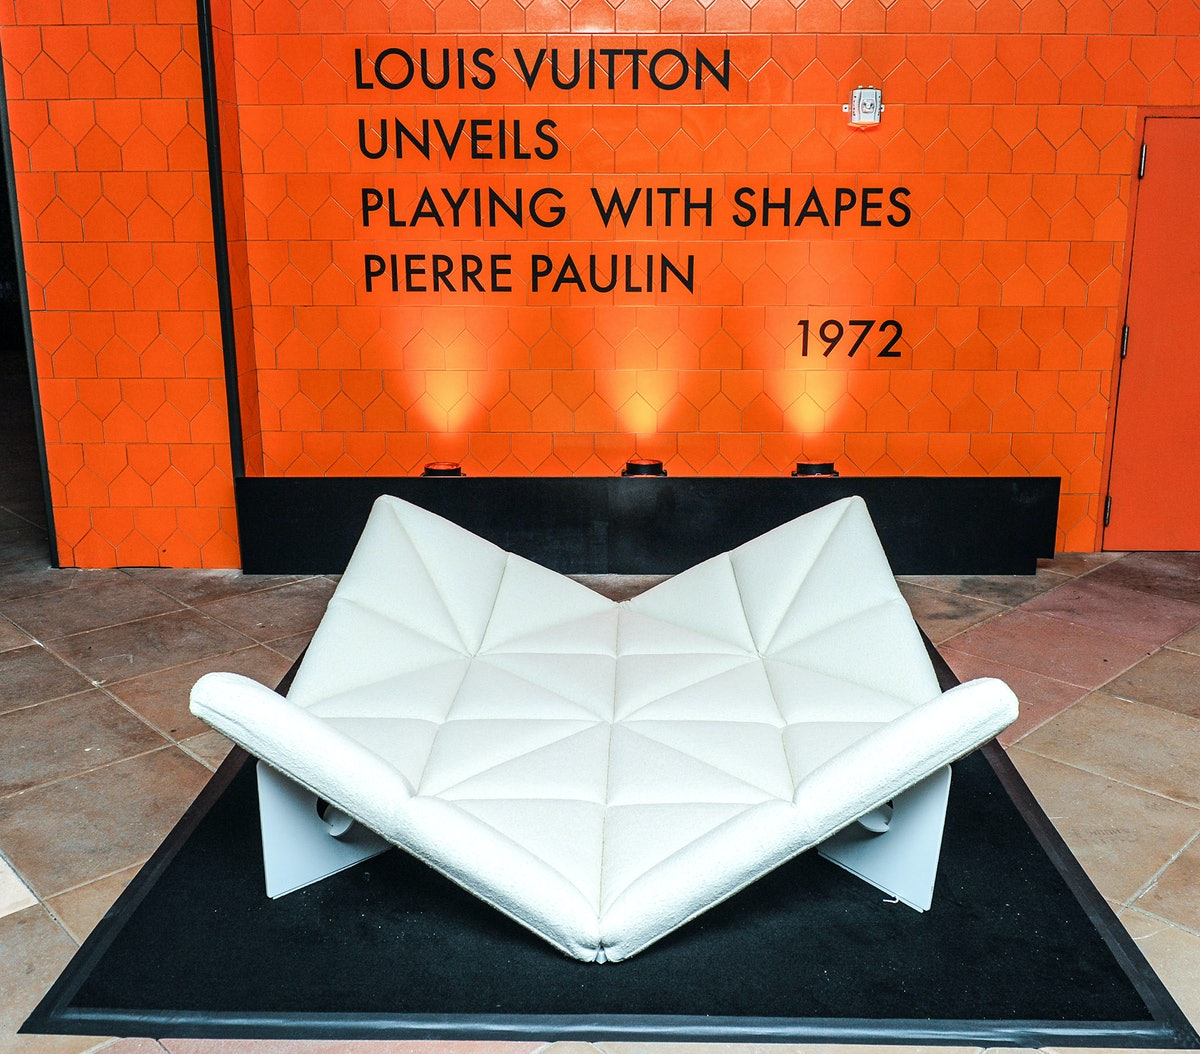 Louis Vuitton unveils Pierre Paulin's Playing with Shapes